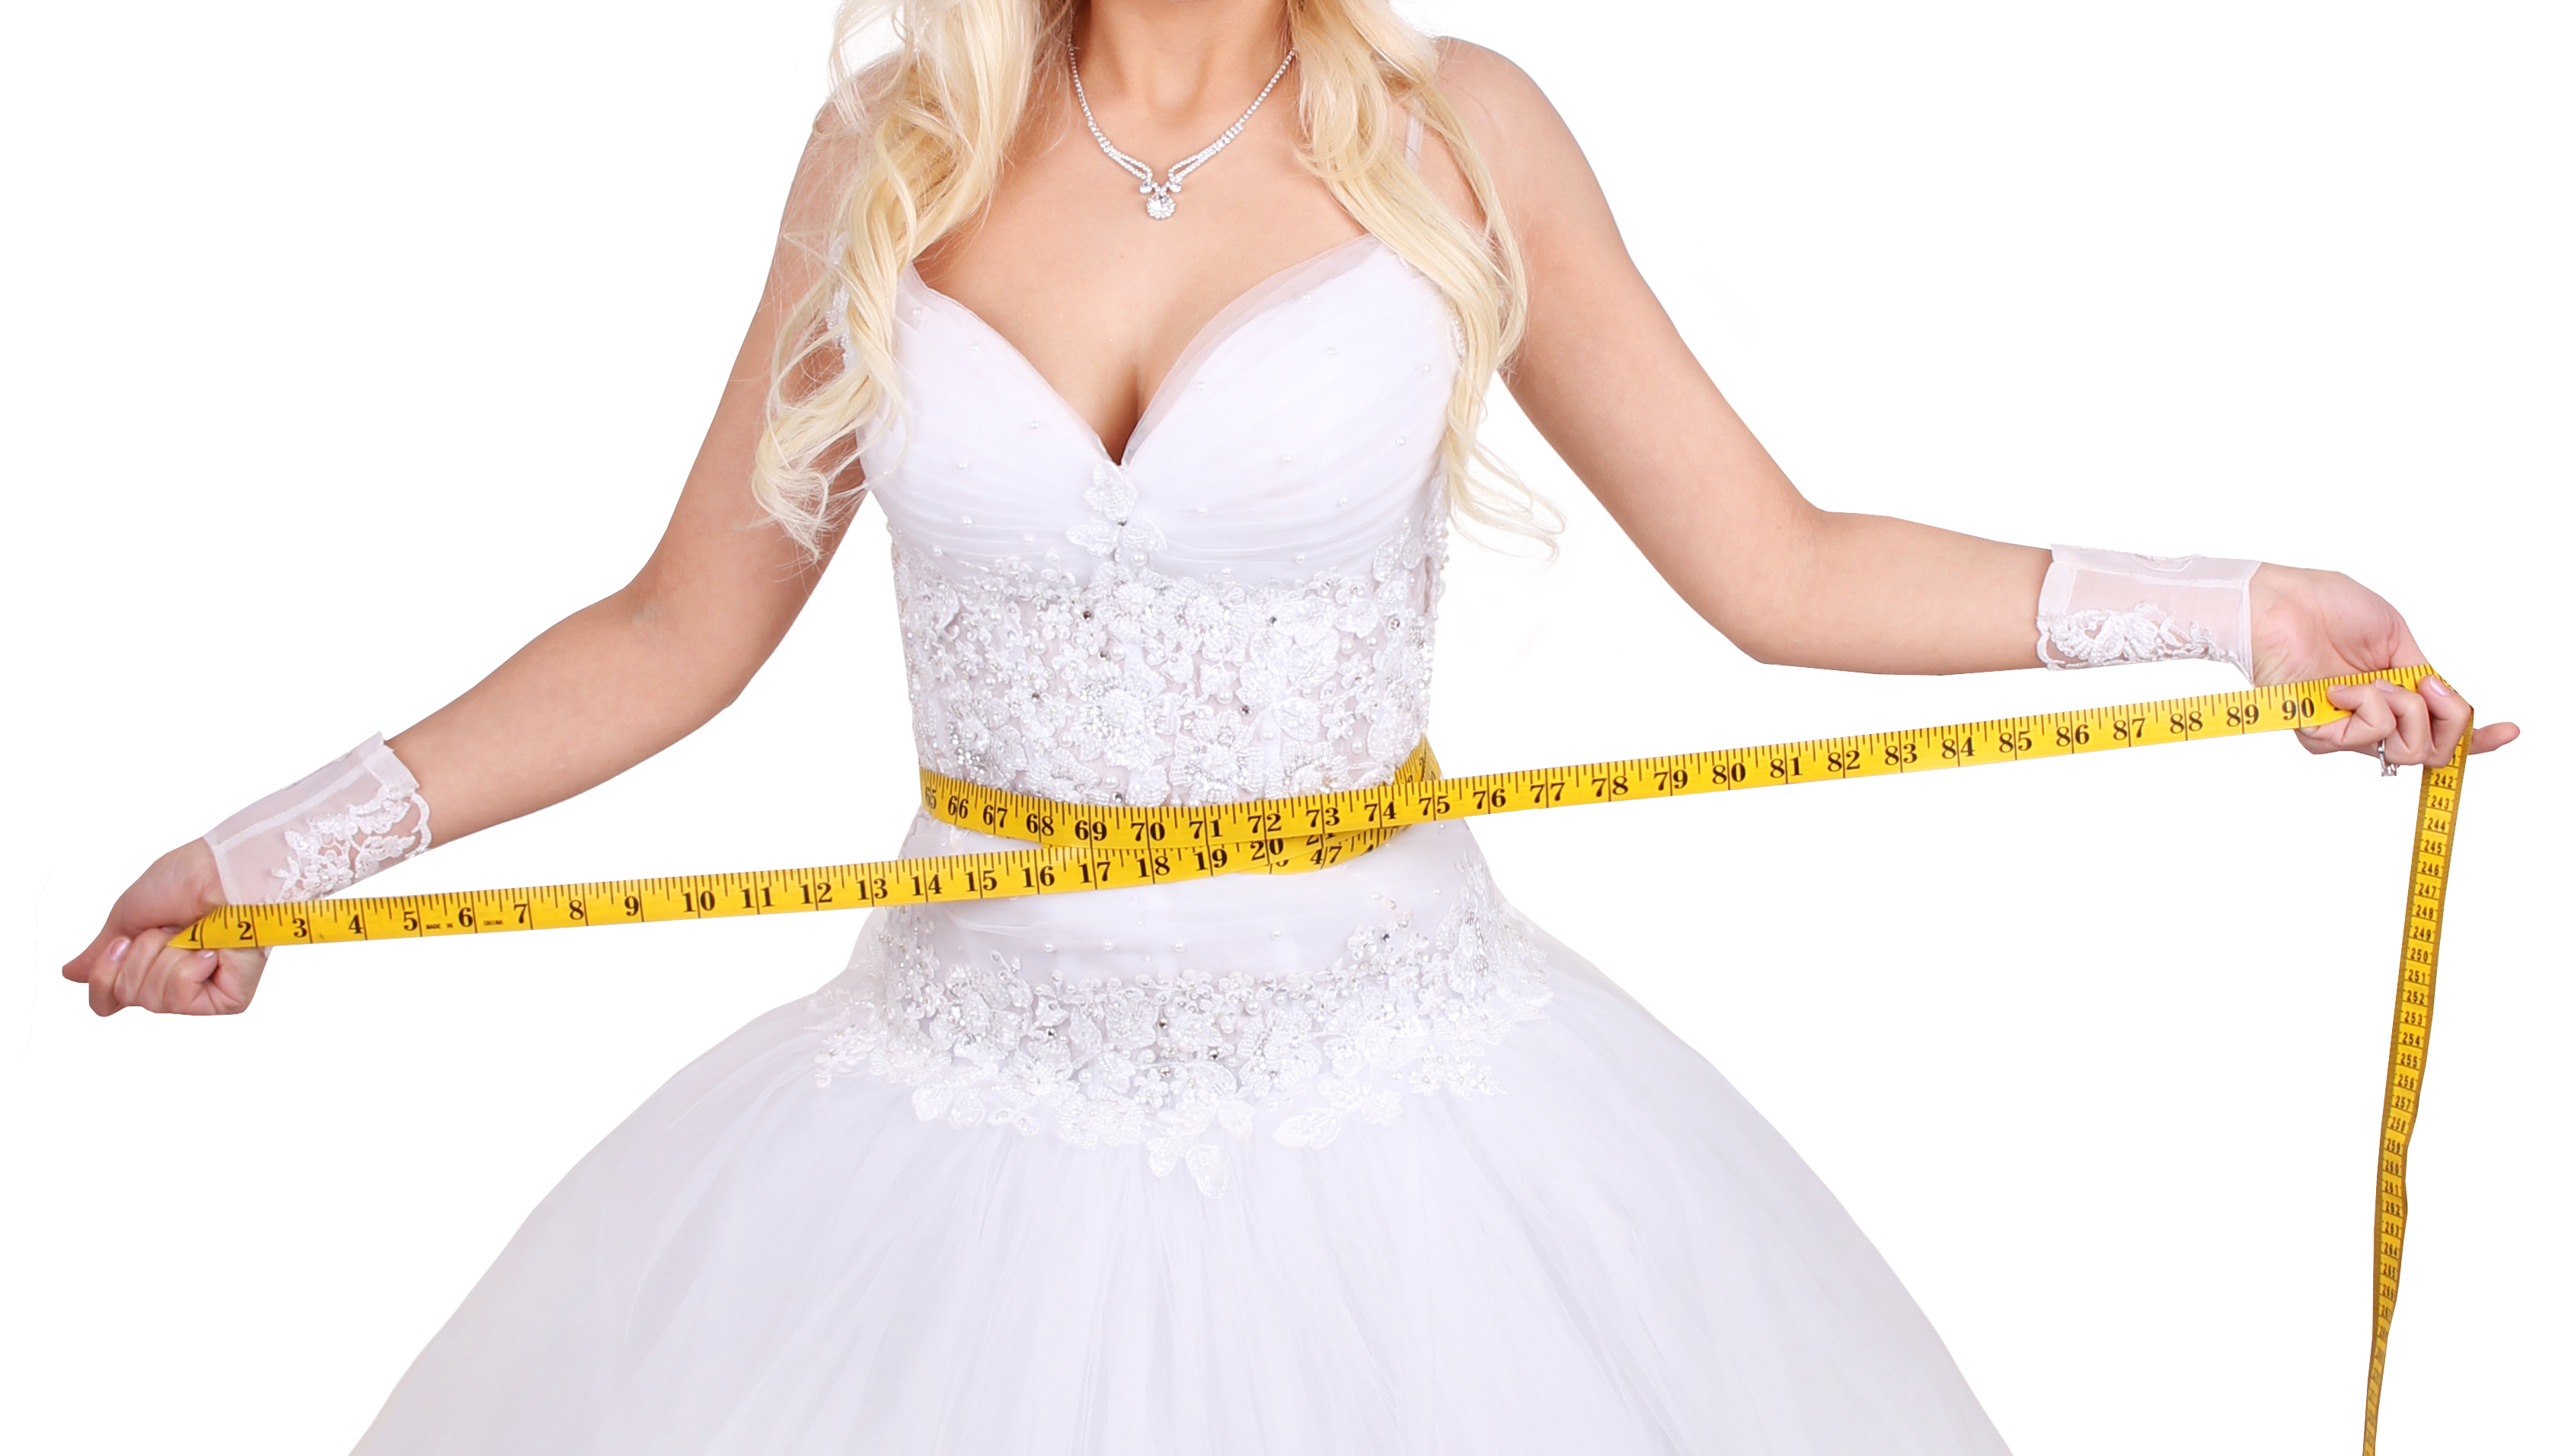 Beauty and fitness are two musts for wedding prep bridal for Double sided tape for wedding dress